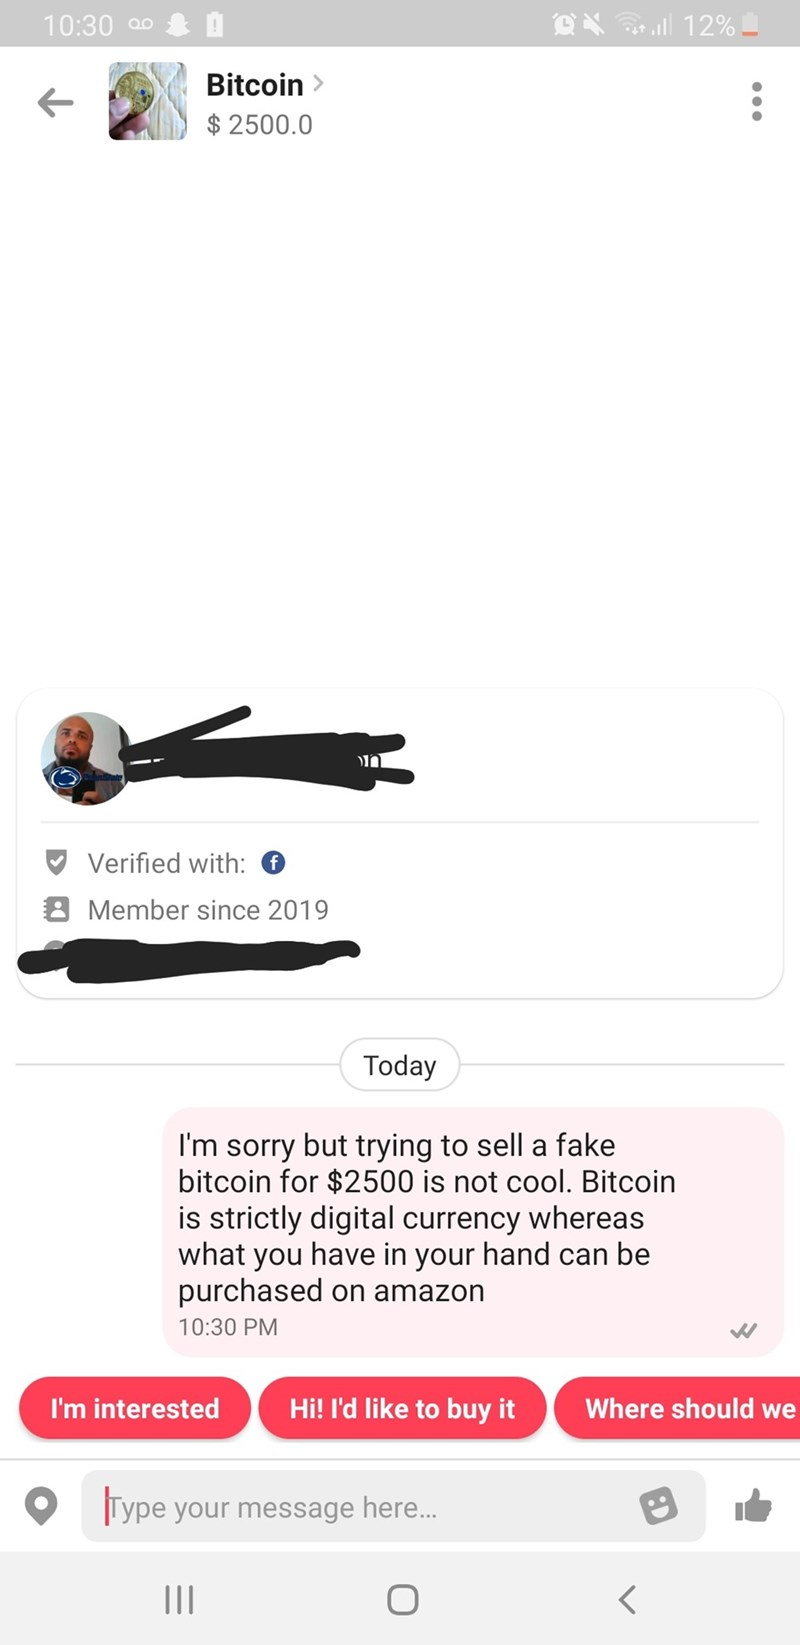 Text - 12% 10:30 Bitcoin> $ 2500.0 Verified with: Member since 2019 Today I'm sorry but trying to sell a fake bitcoin for $2500 is not cool. Bitcoin is strictly digital currency whereas what you have in your hand can be purchased on amazon 10:30 PM Where should we Hi! I'd like to buy it I'm interested Type your message here...